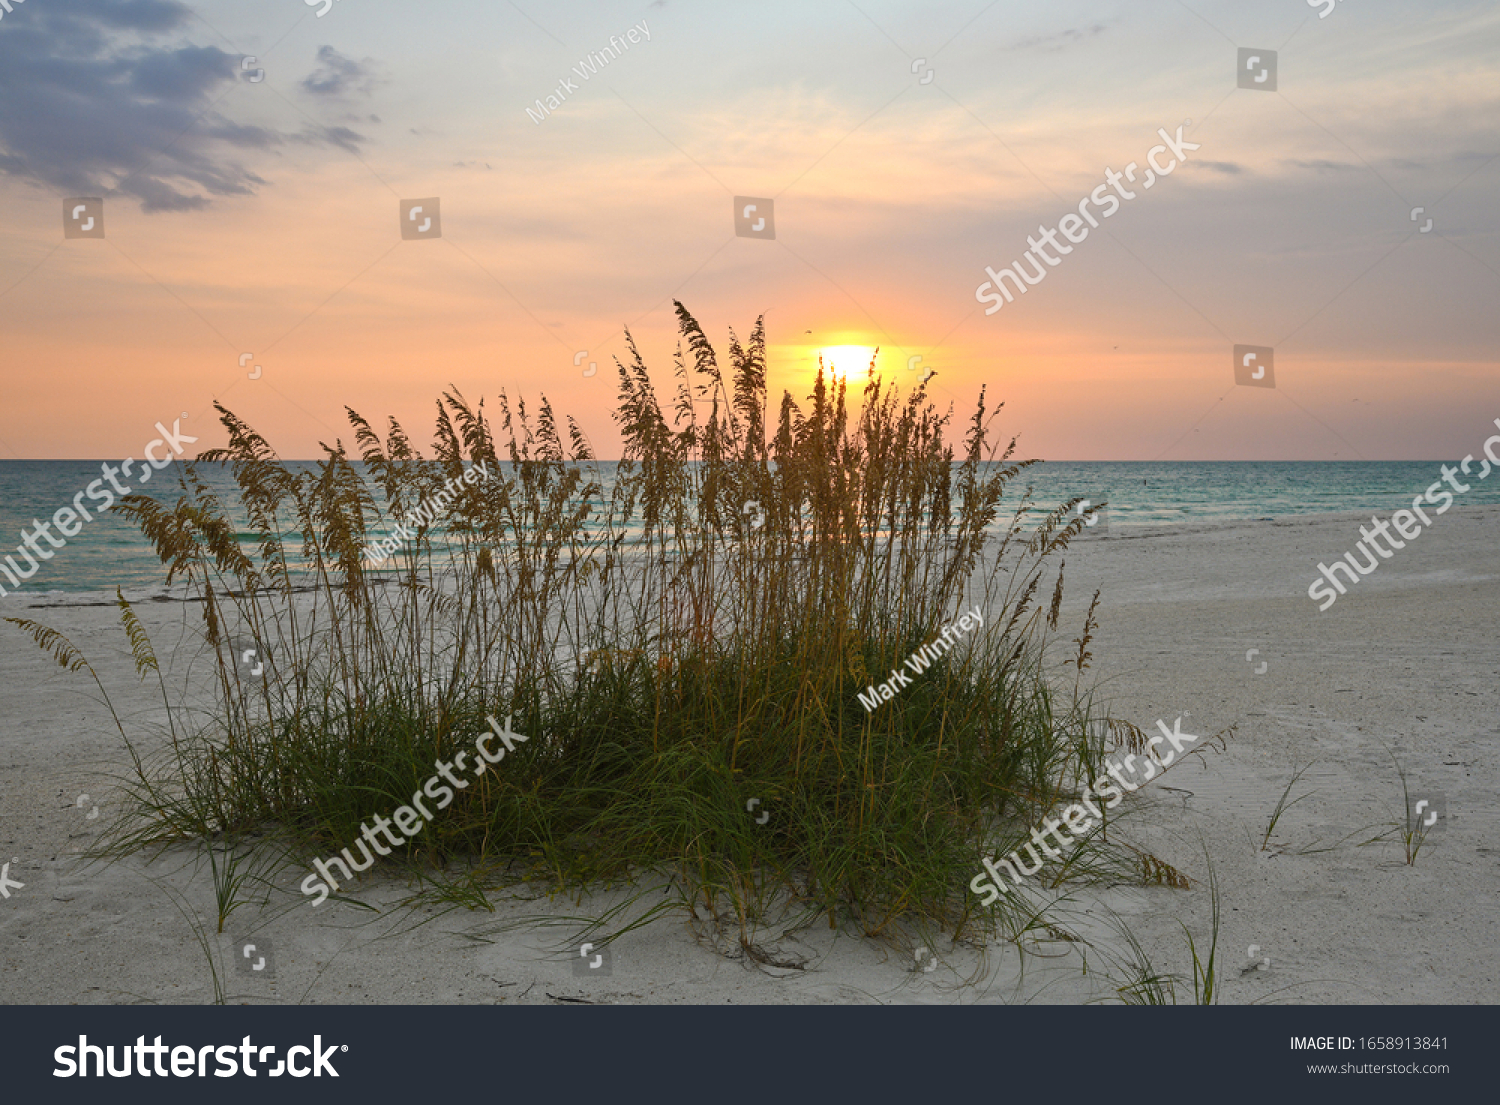 stock-photo-sea-oats-on-beach-of-the-gul